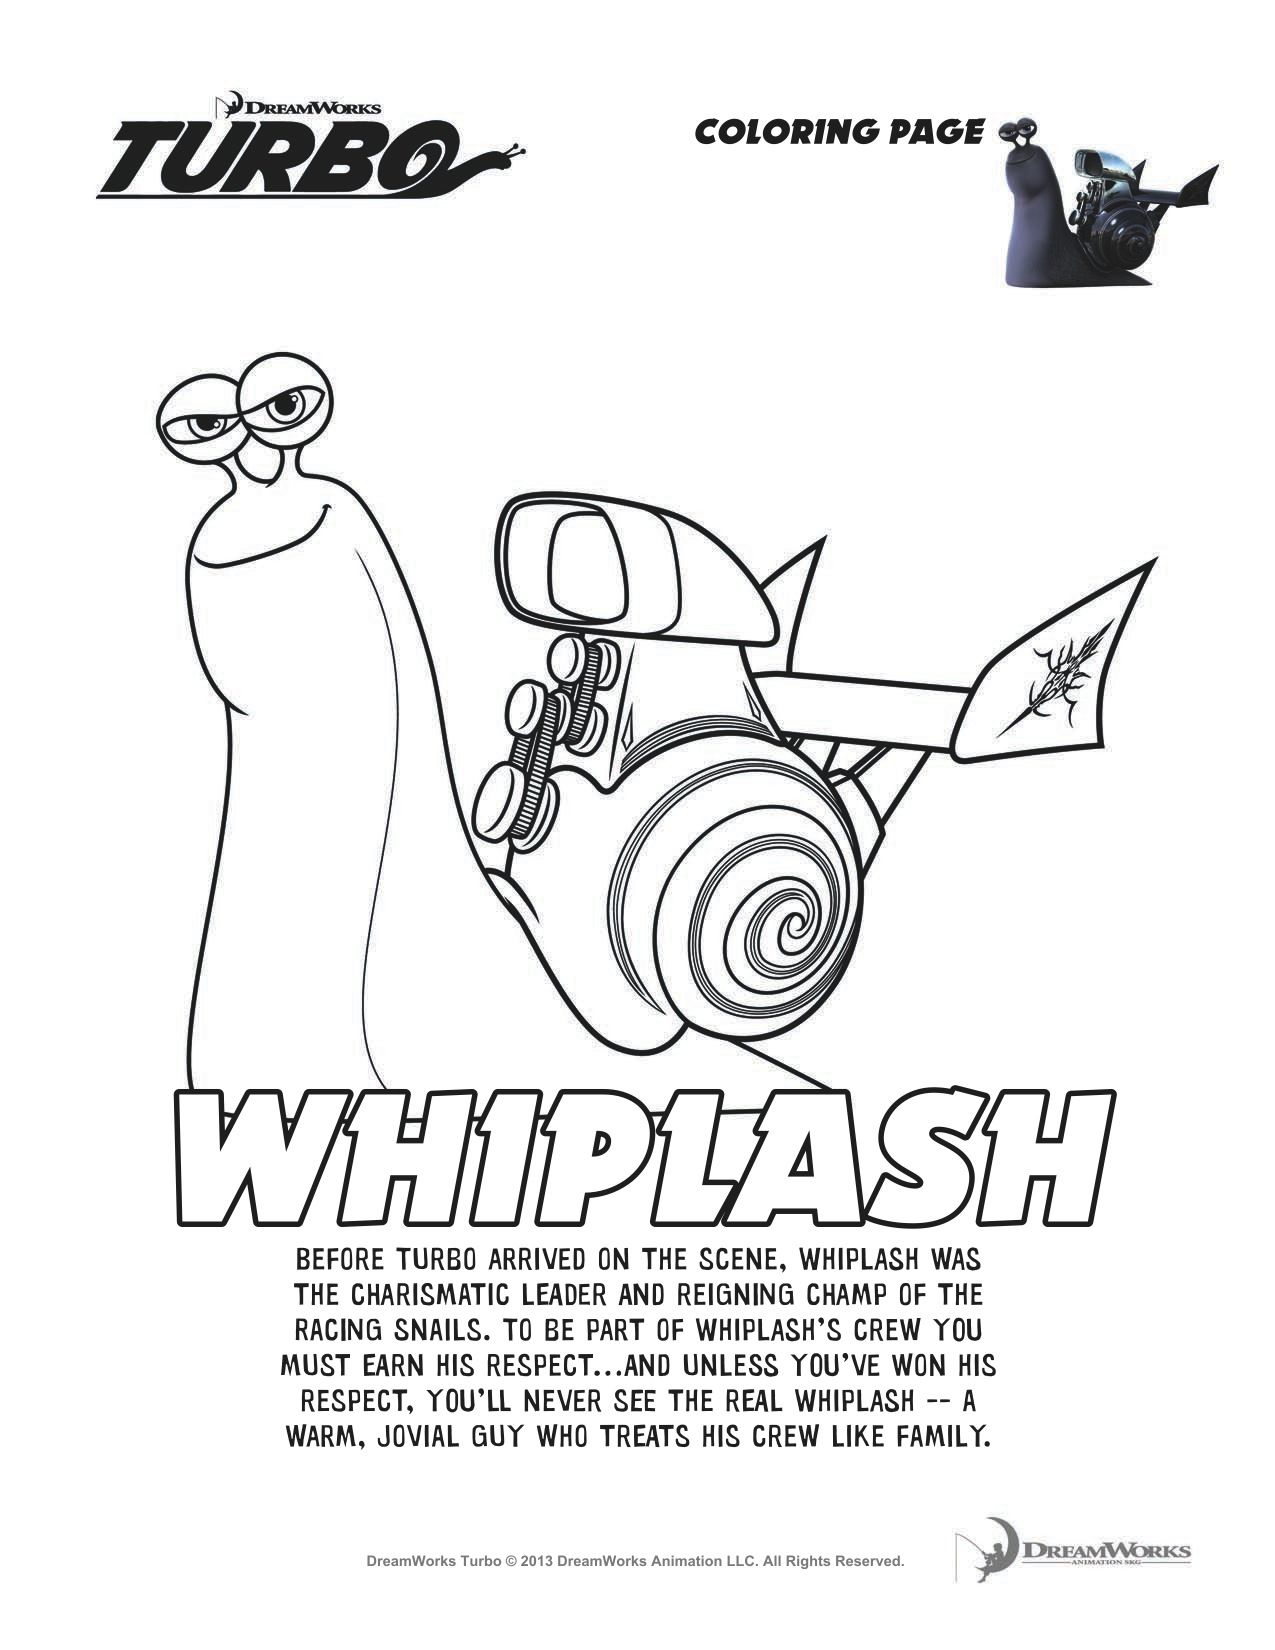 Color crew printables - Turbo Whiplash Coloring Sheet